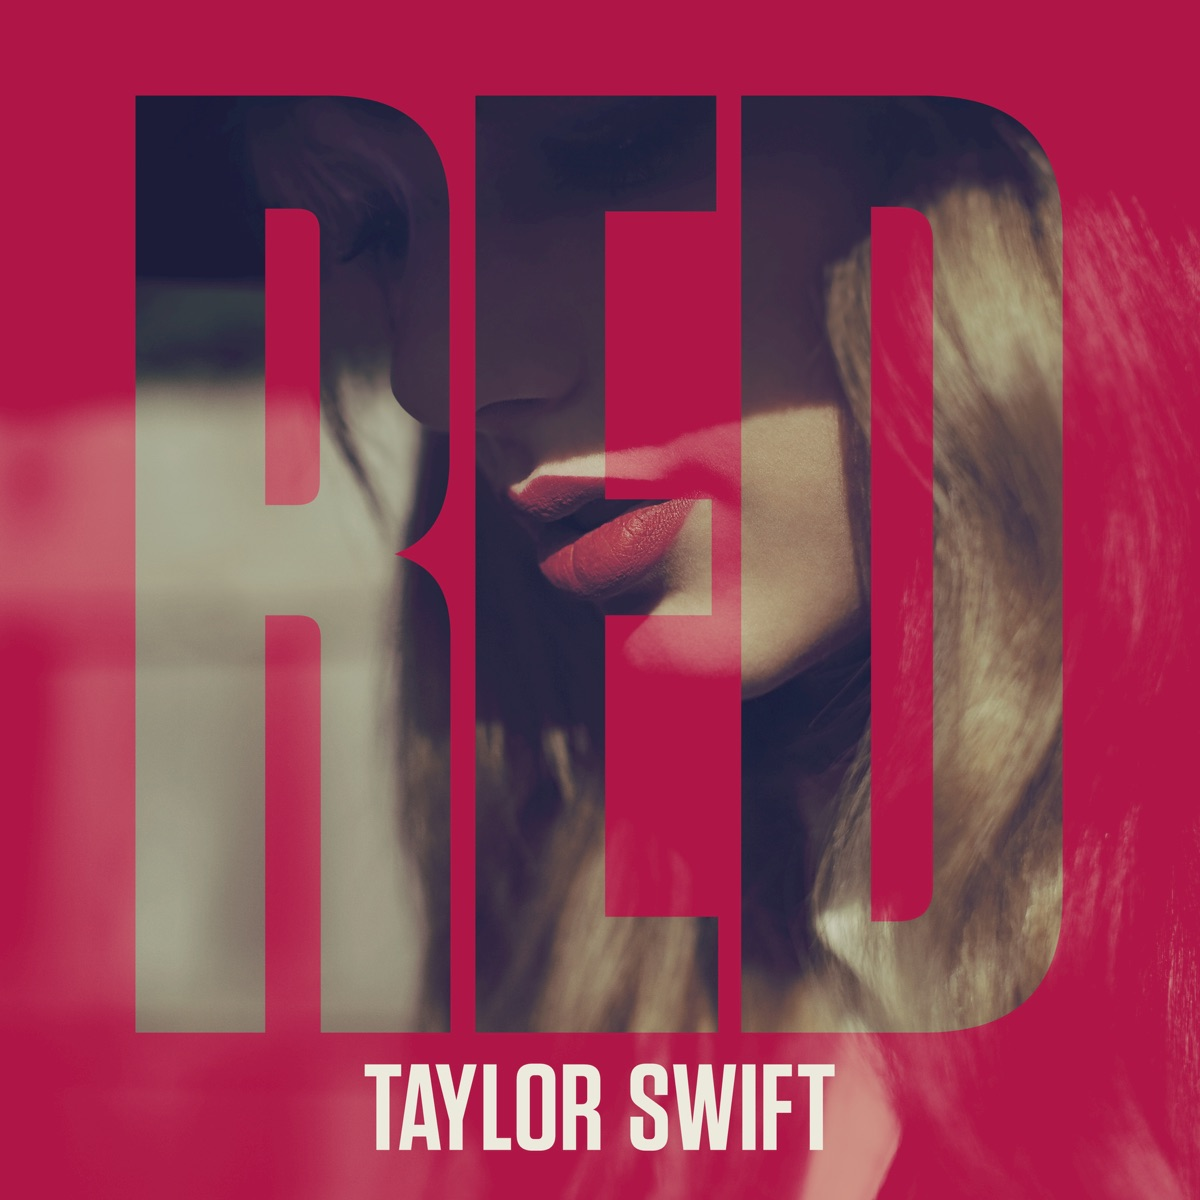 Red Deluxe Edition Taylor Swift CD cover